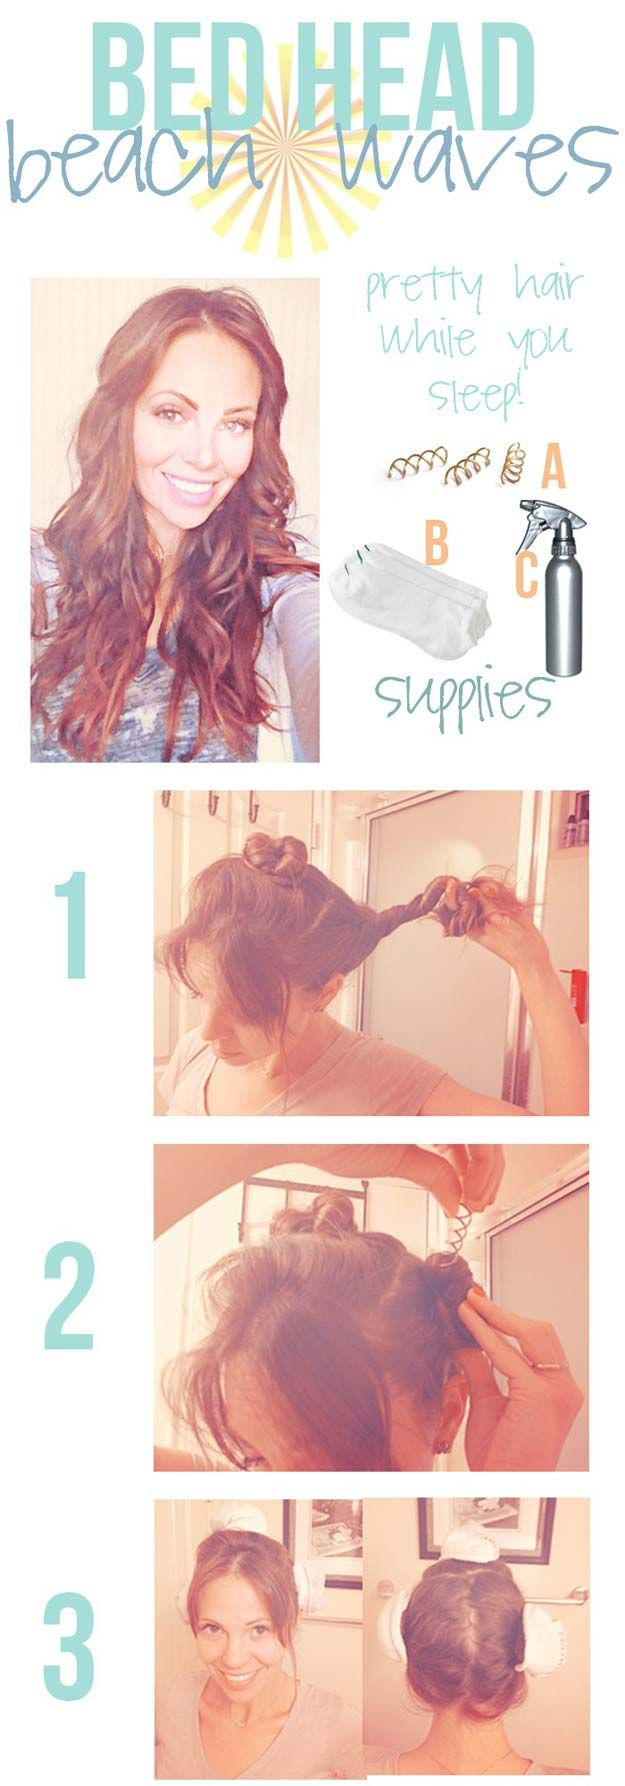 Easy Beachy Waves Tutorials for Hair - Sleep On It - DIY And Easy Step By Step T...